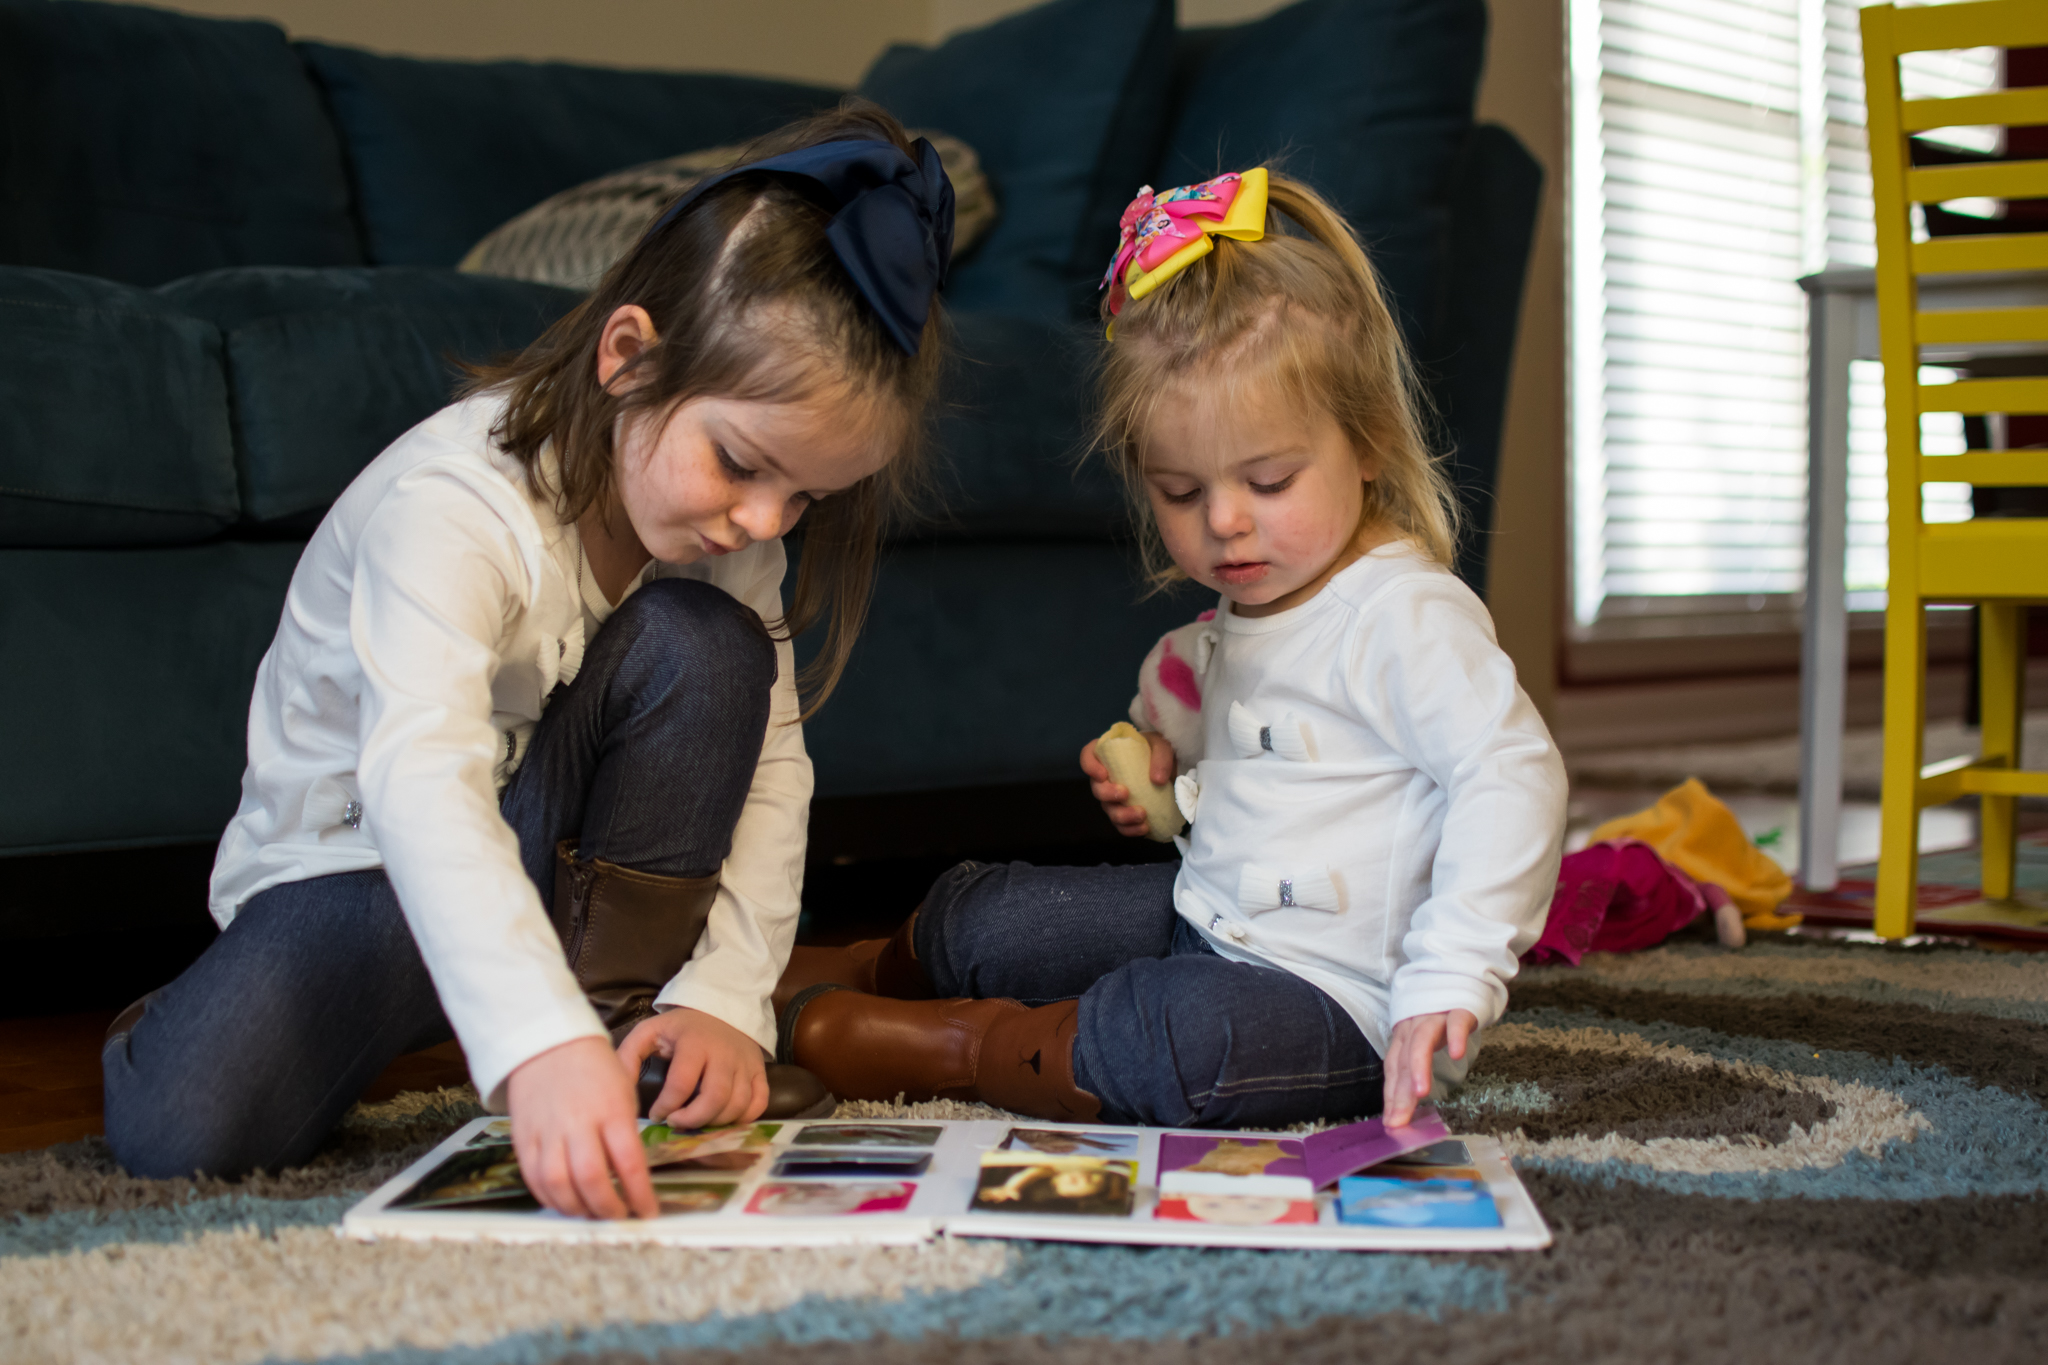 this is an image of two little girl sisters sitting on the floor and reading a book